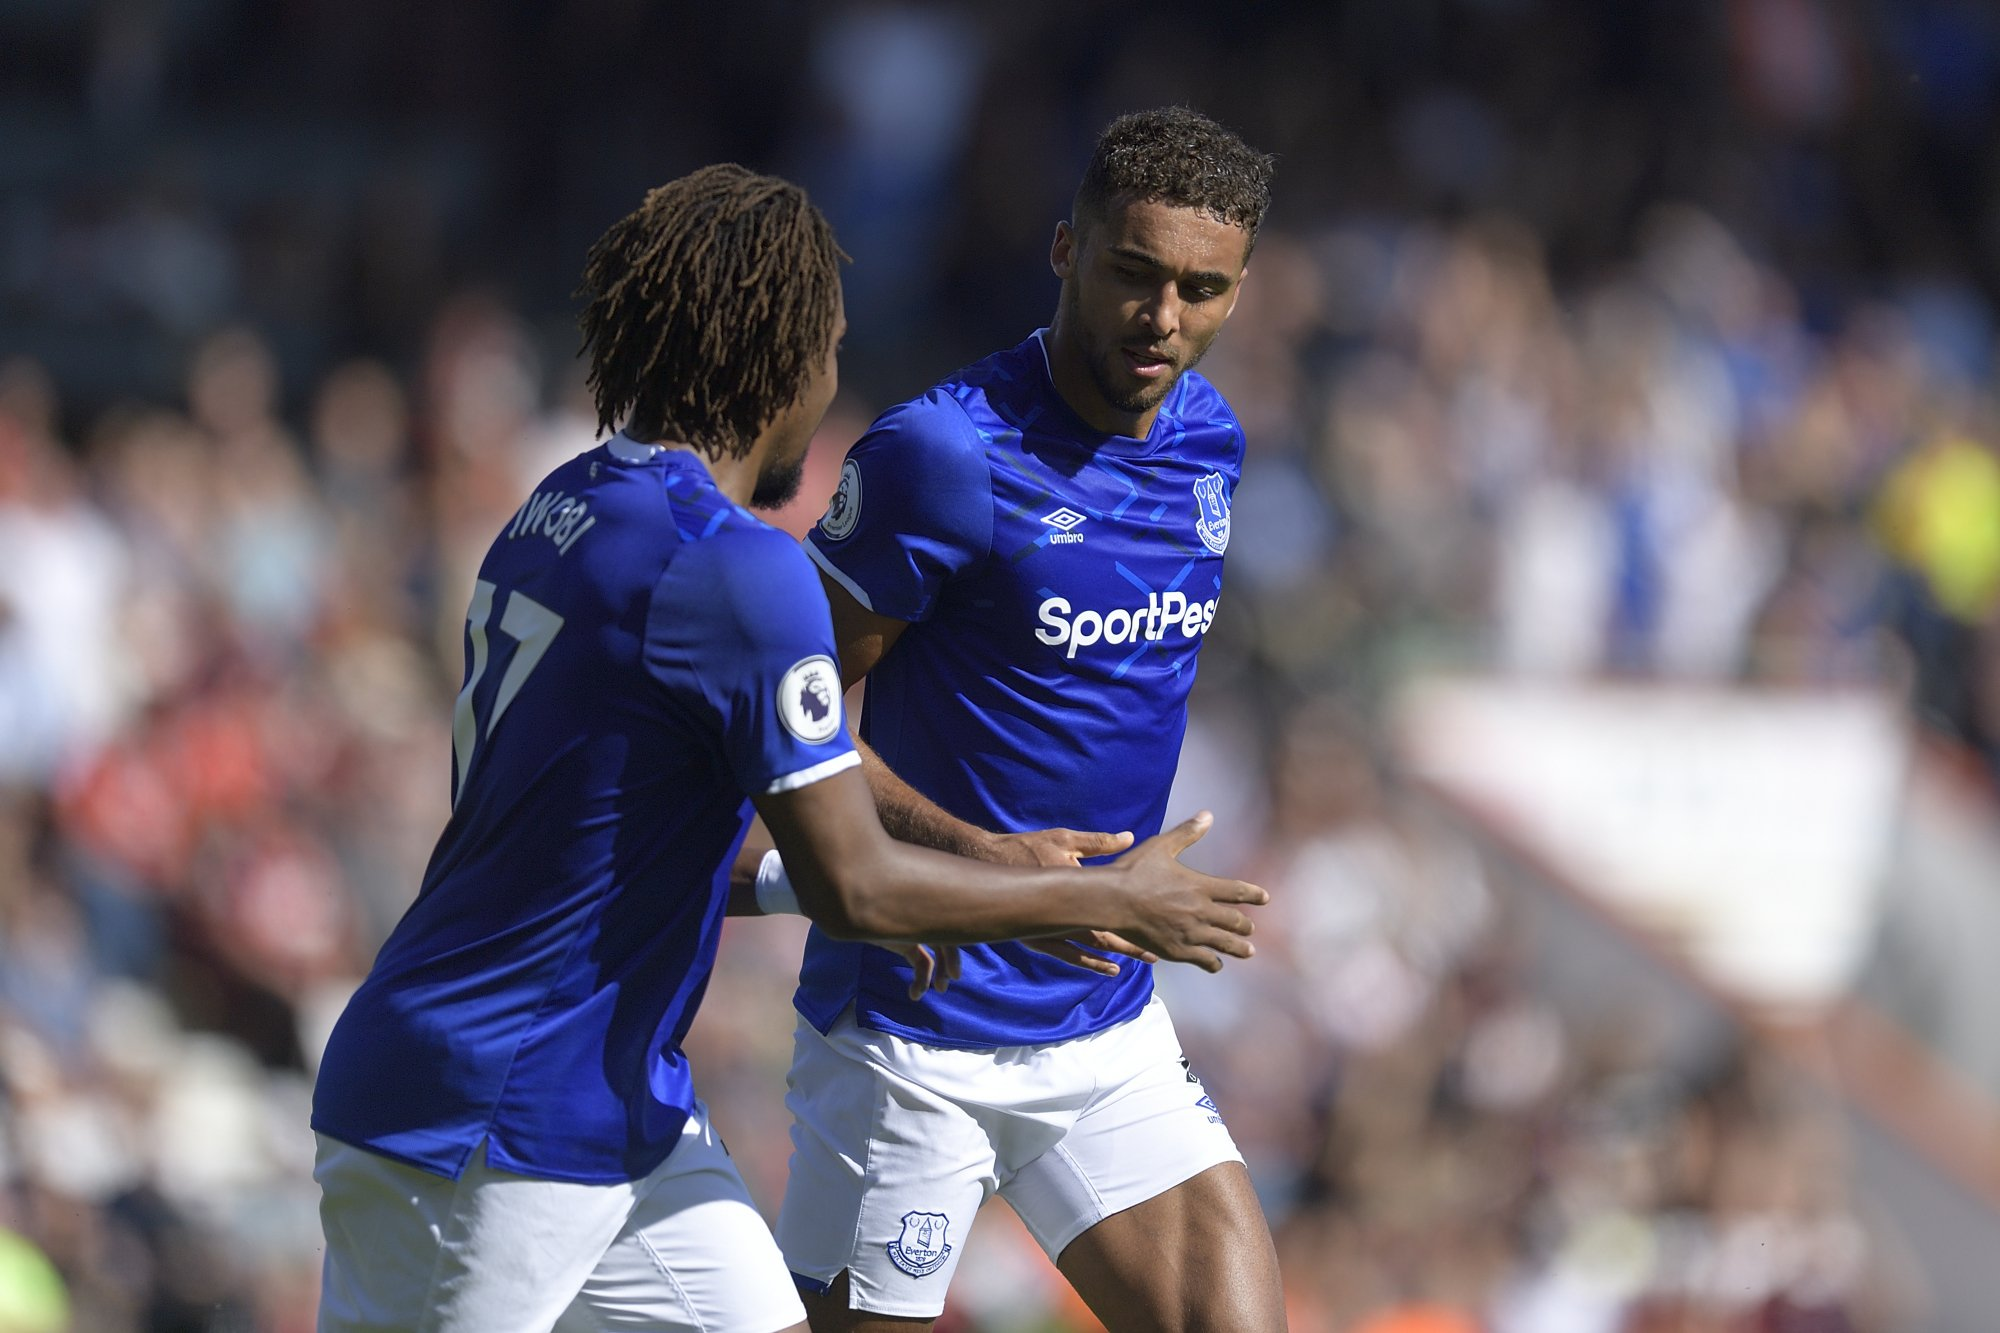 EPL: Iwobi  Earns Second Start As Everton Lose 3-1 To Bournemouth